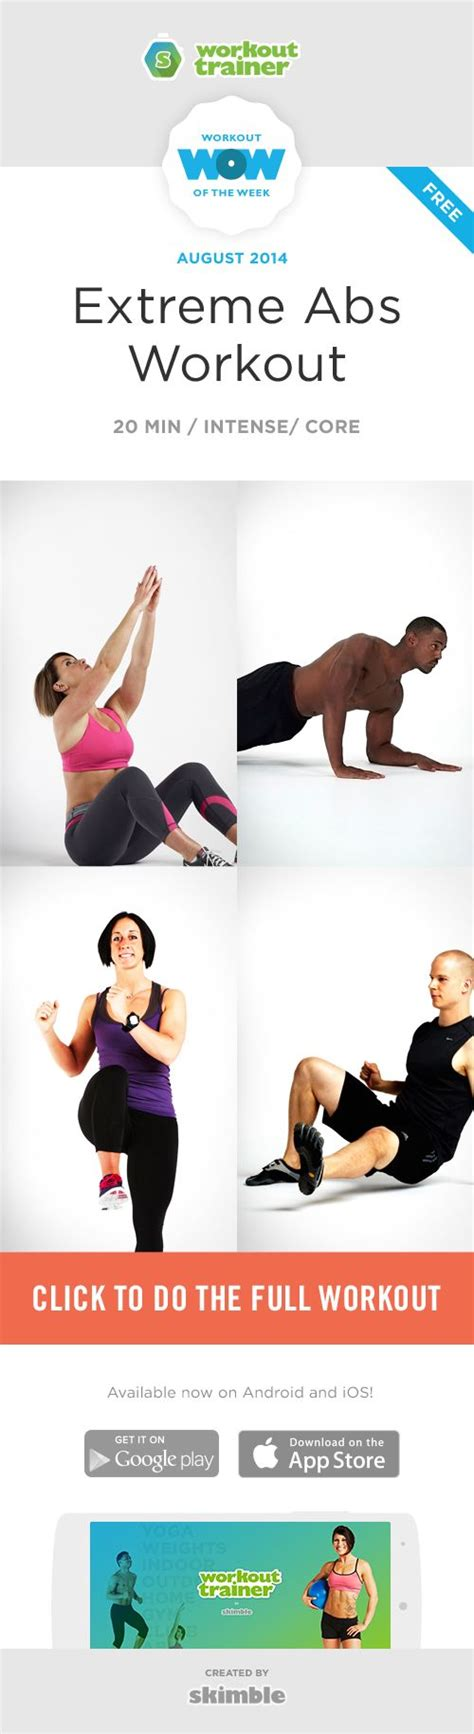 17 best ideas about ab workout on killer abs dumbbell leg workout and